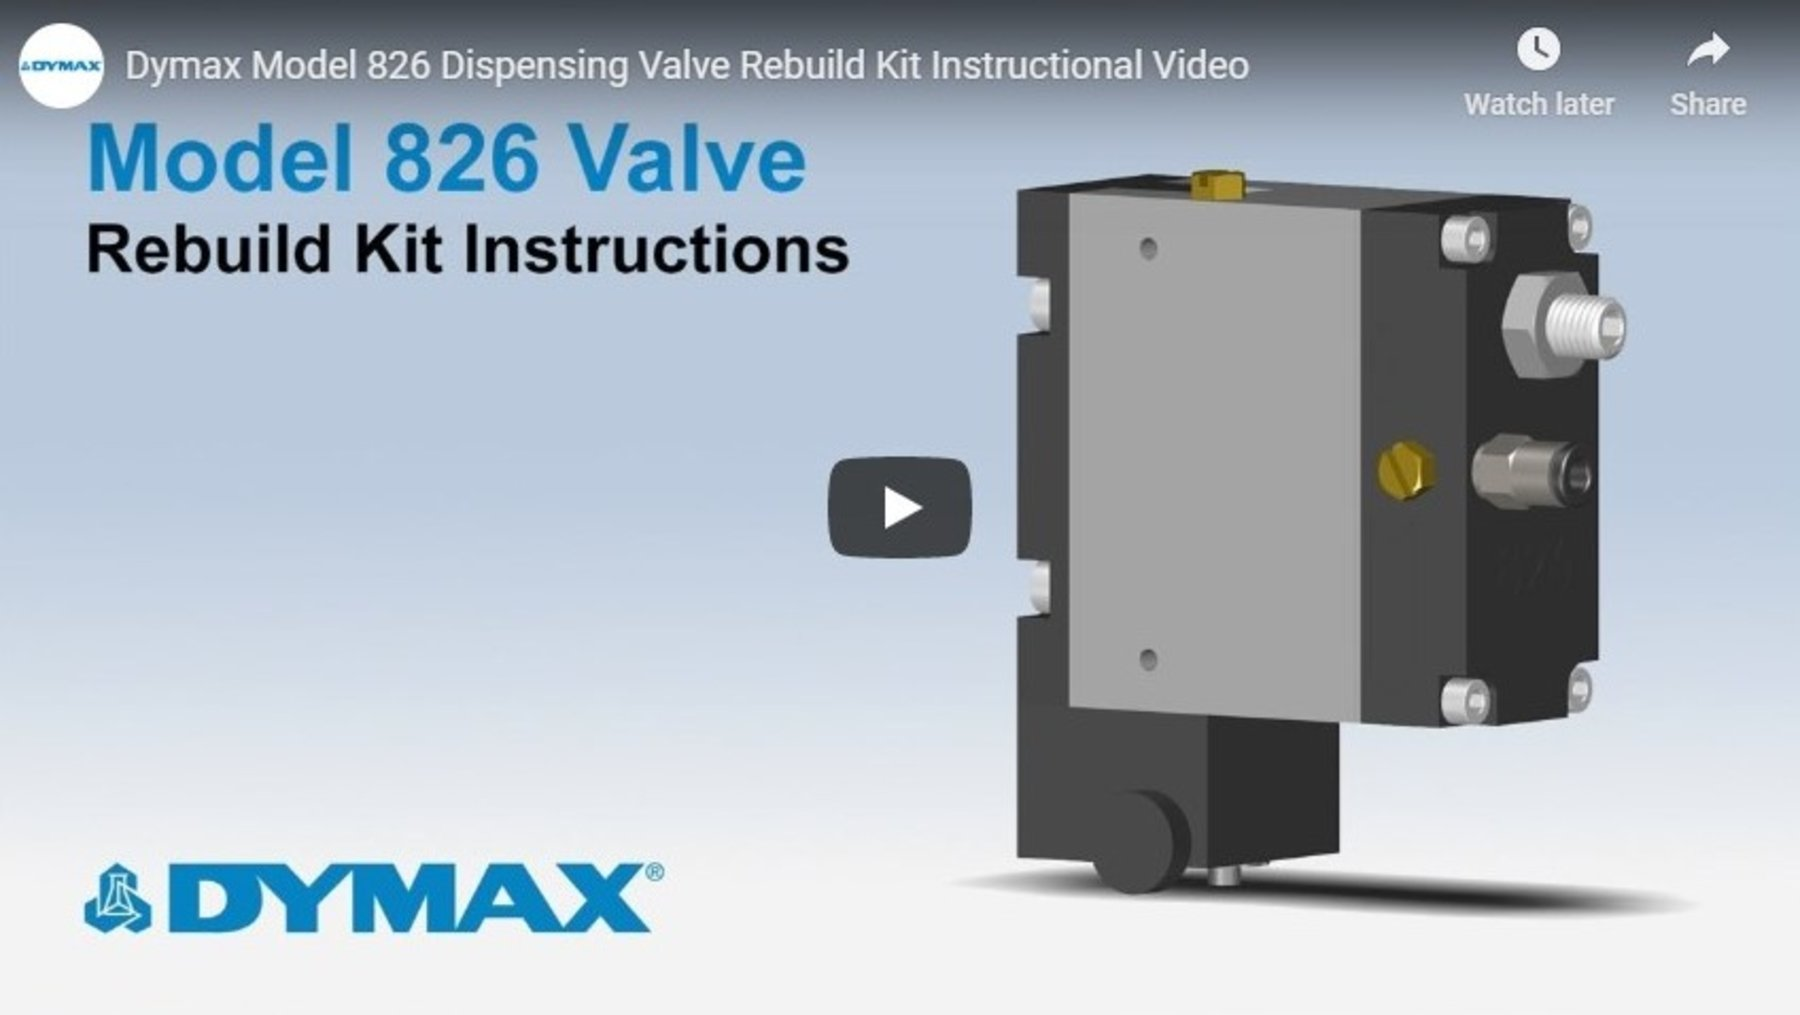 Dymax Model 826 Dispensing Valve Rebuild Kit Instructional Video